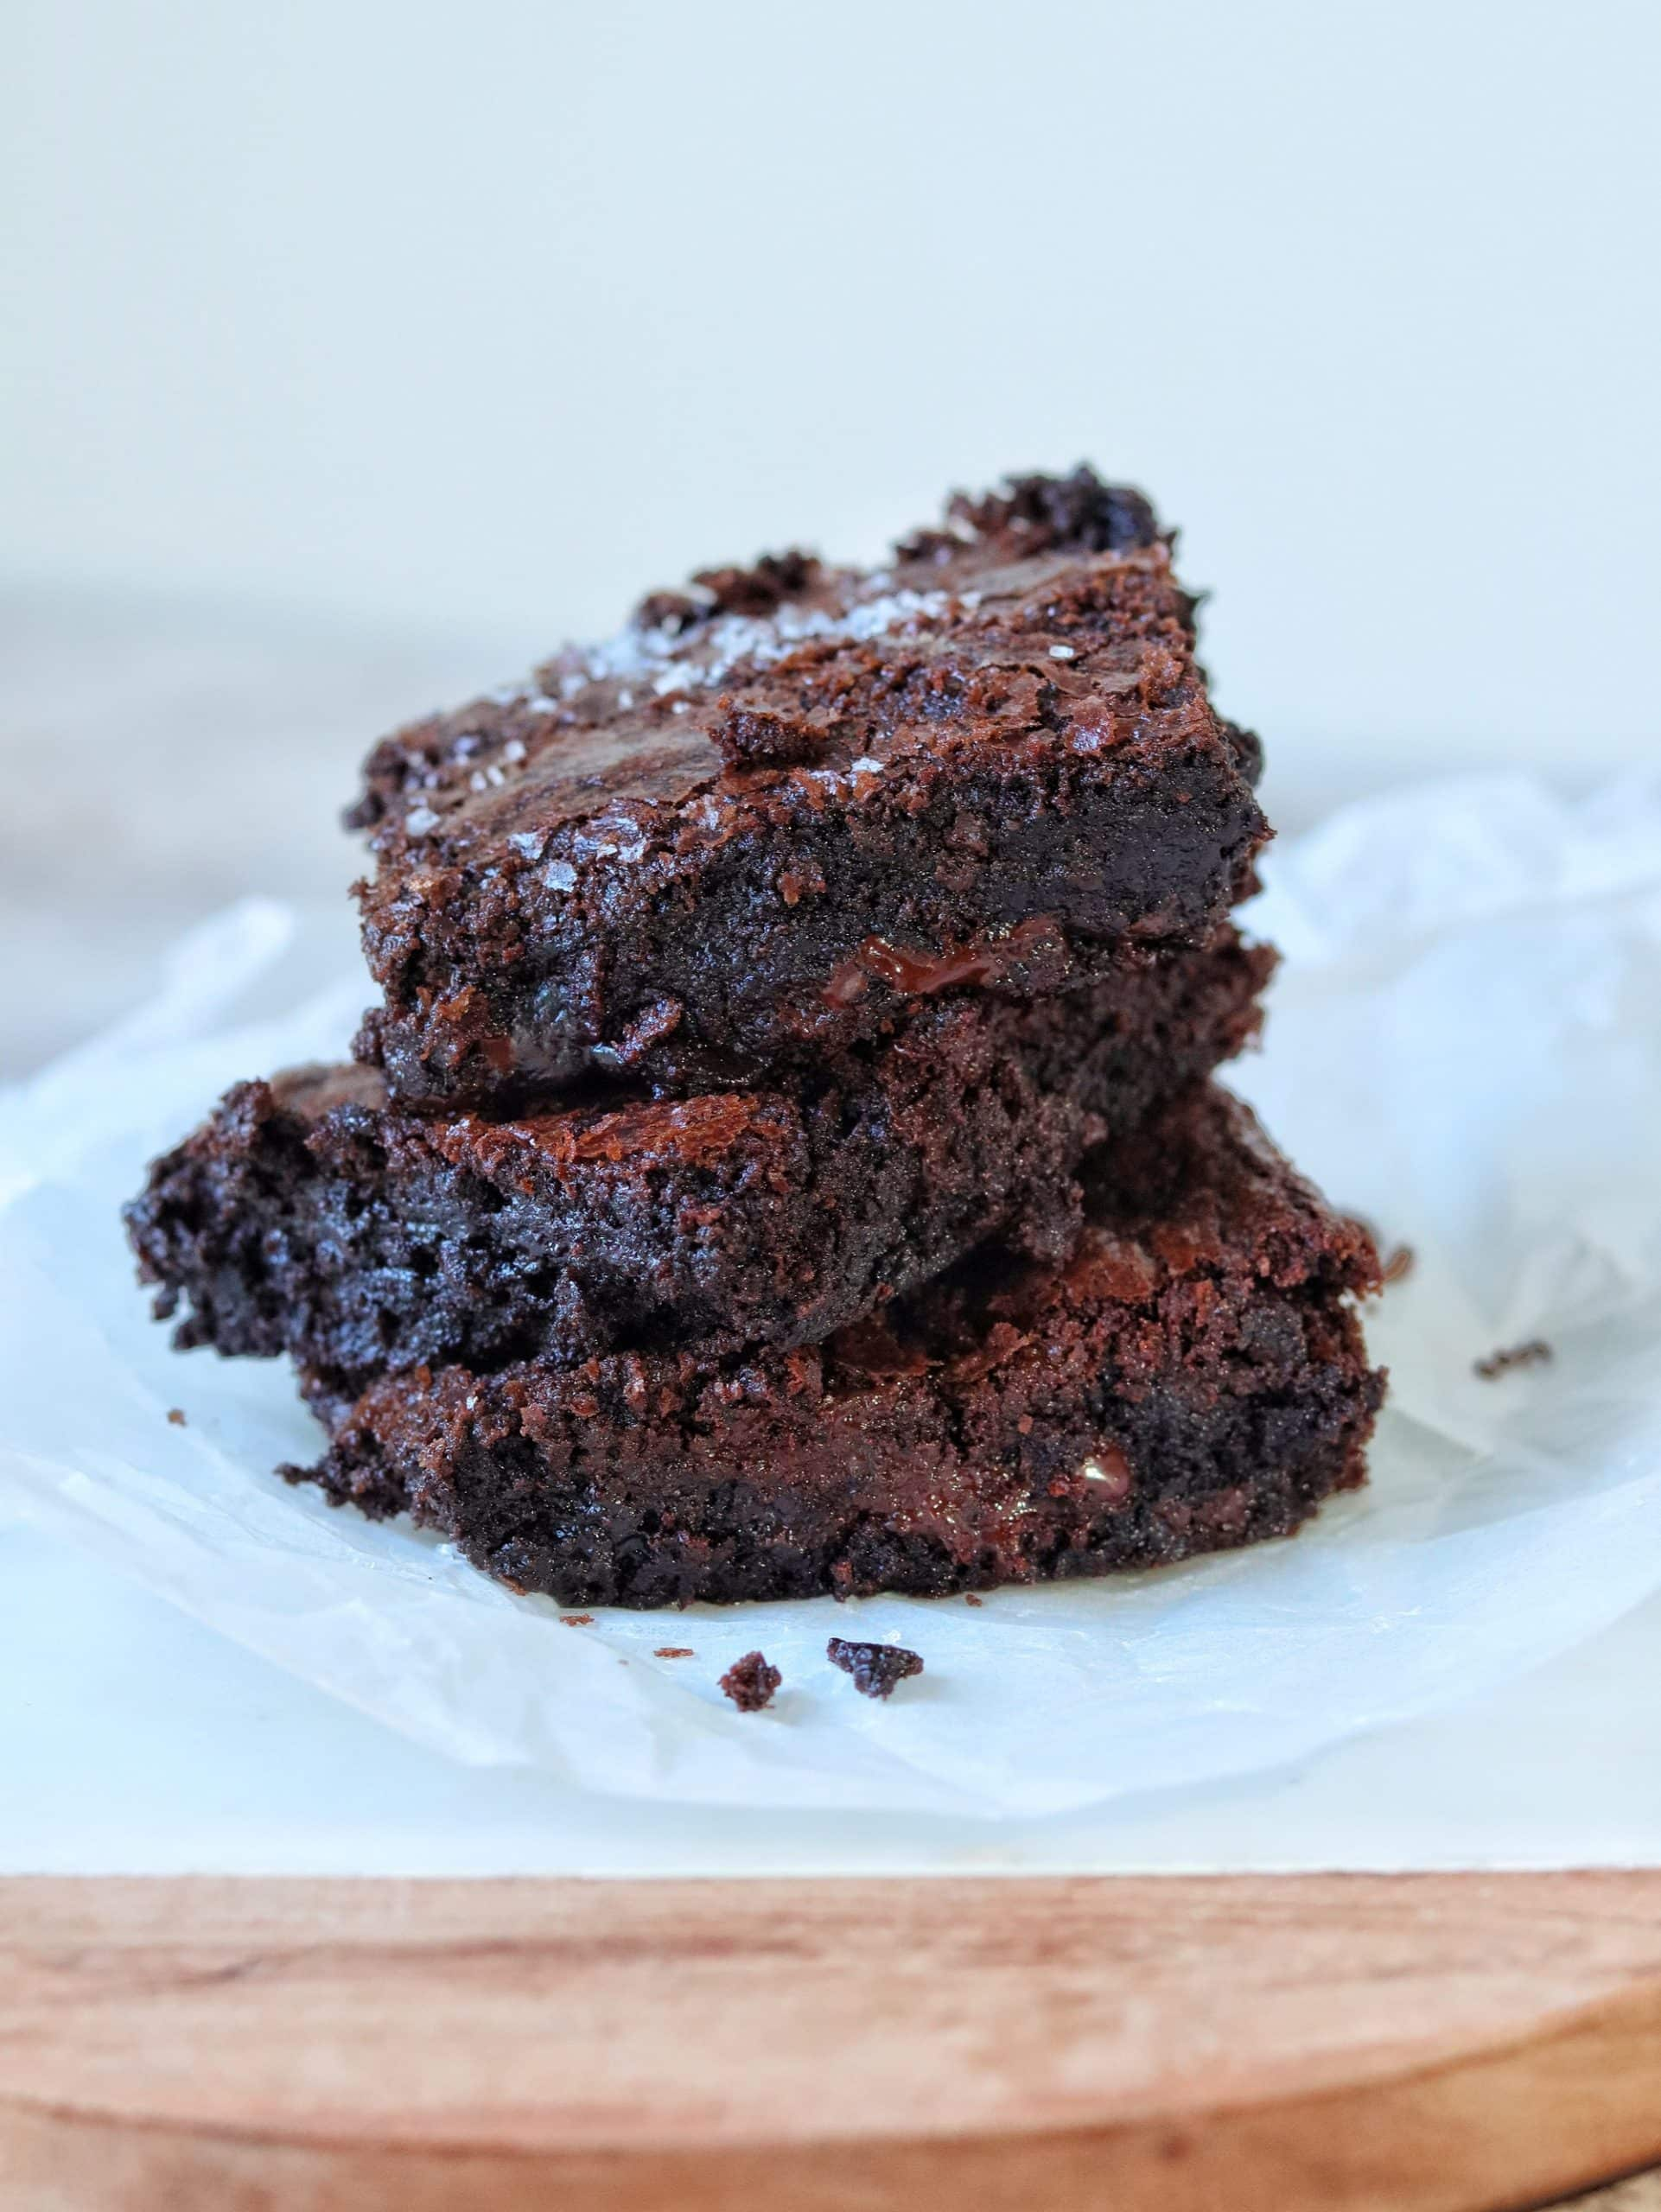 Flaky brownies